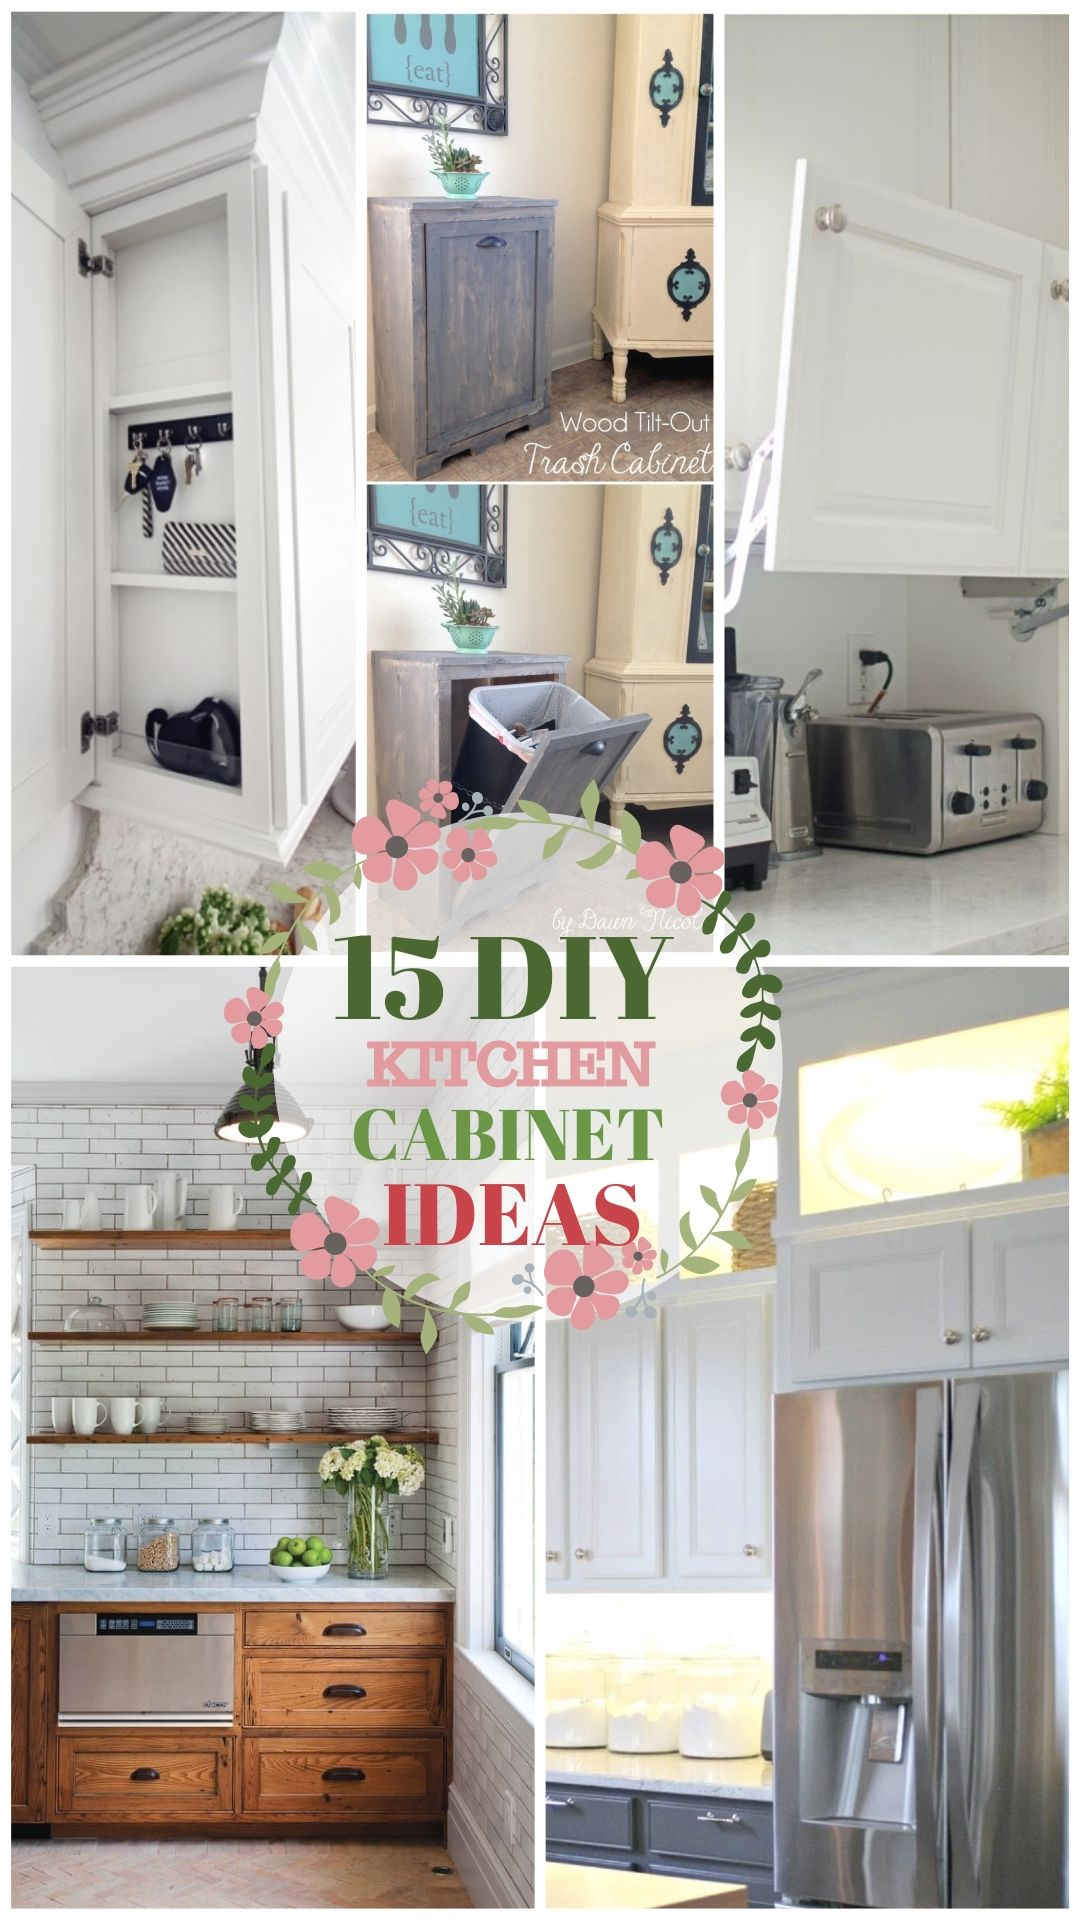 Kitchen Cabinet Inspirations Best Diy Lists In 2020 Diy Kitchen Cabinets Diy Kitchen New Kitchen Diy